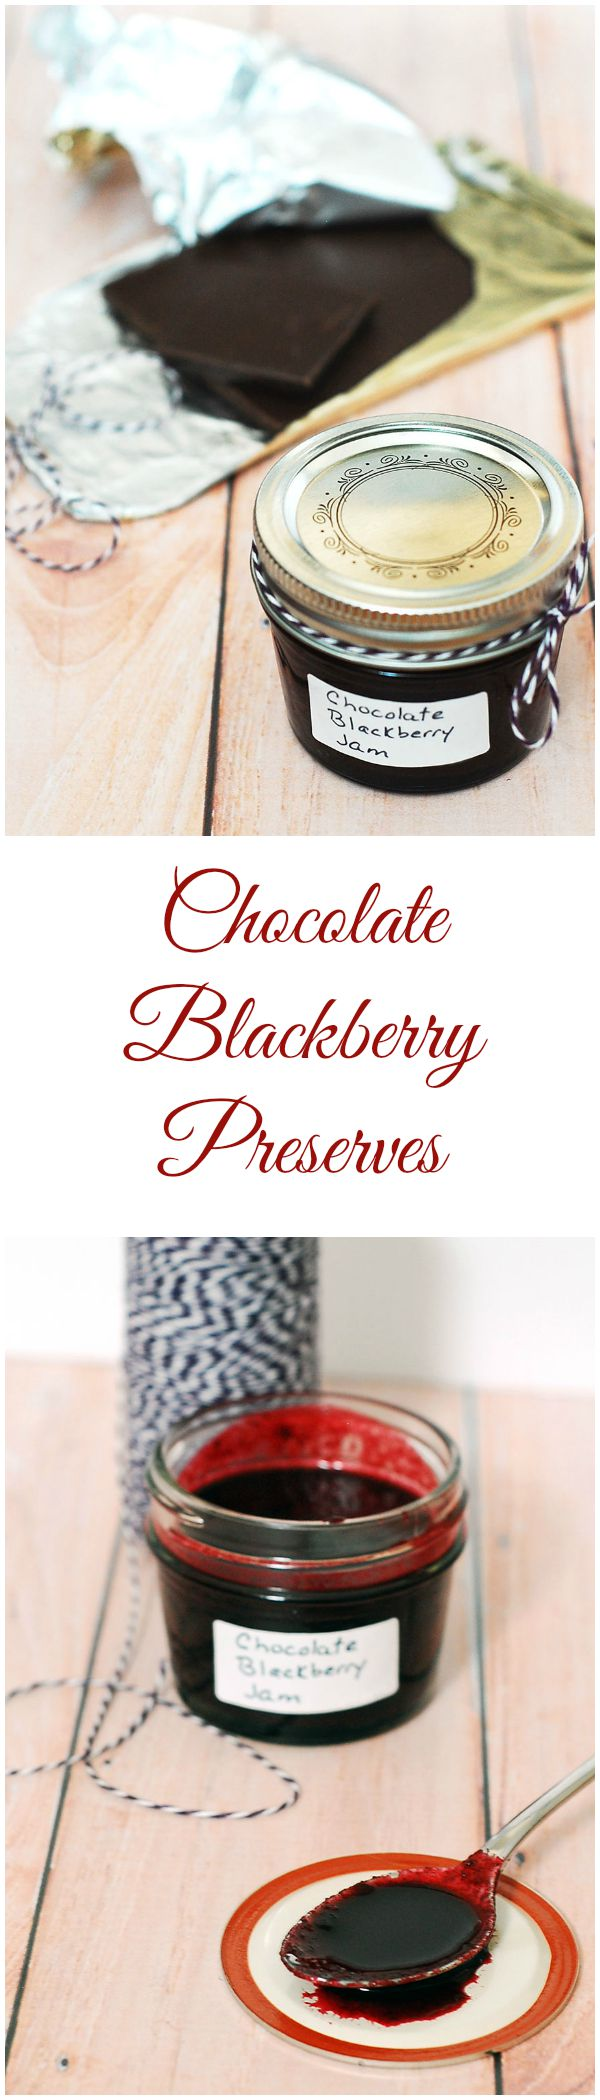 Preserve summer's plump, juicy blackberries in these decadent chocolate blackberry preserves — not quite jam, not quite sauce, but tastes delicious on everything. #SundaySupper TheRedheadBaker.com